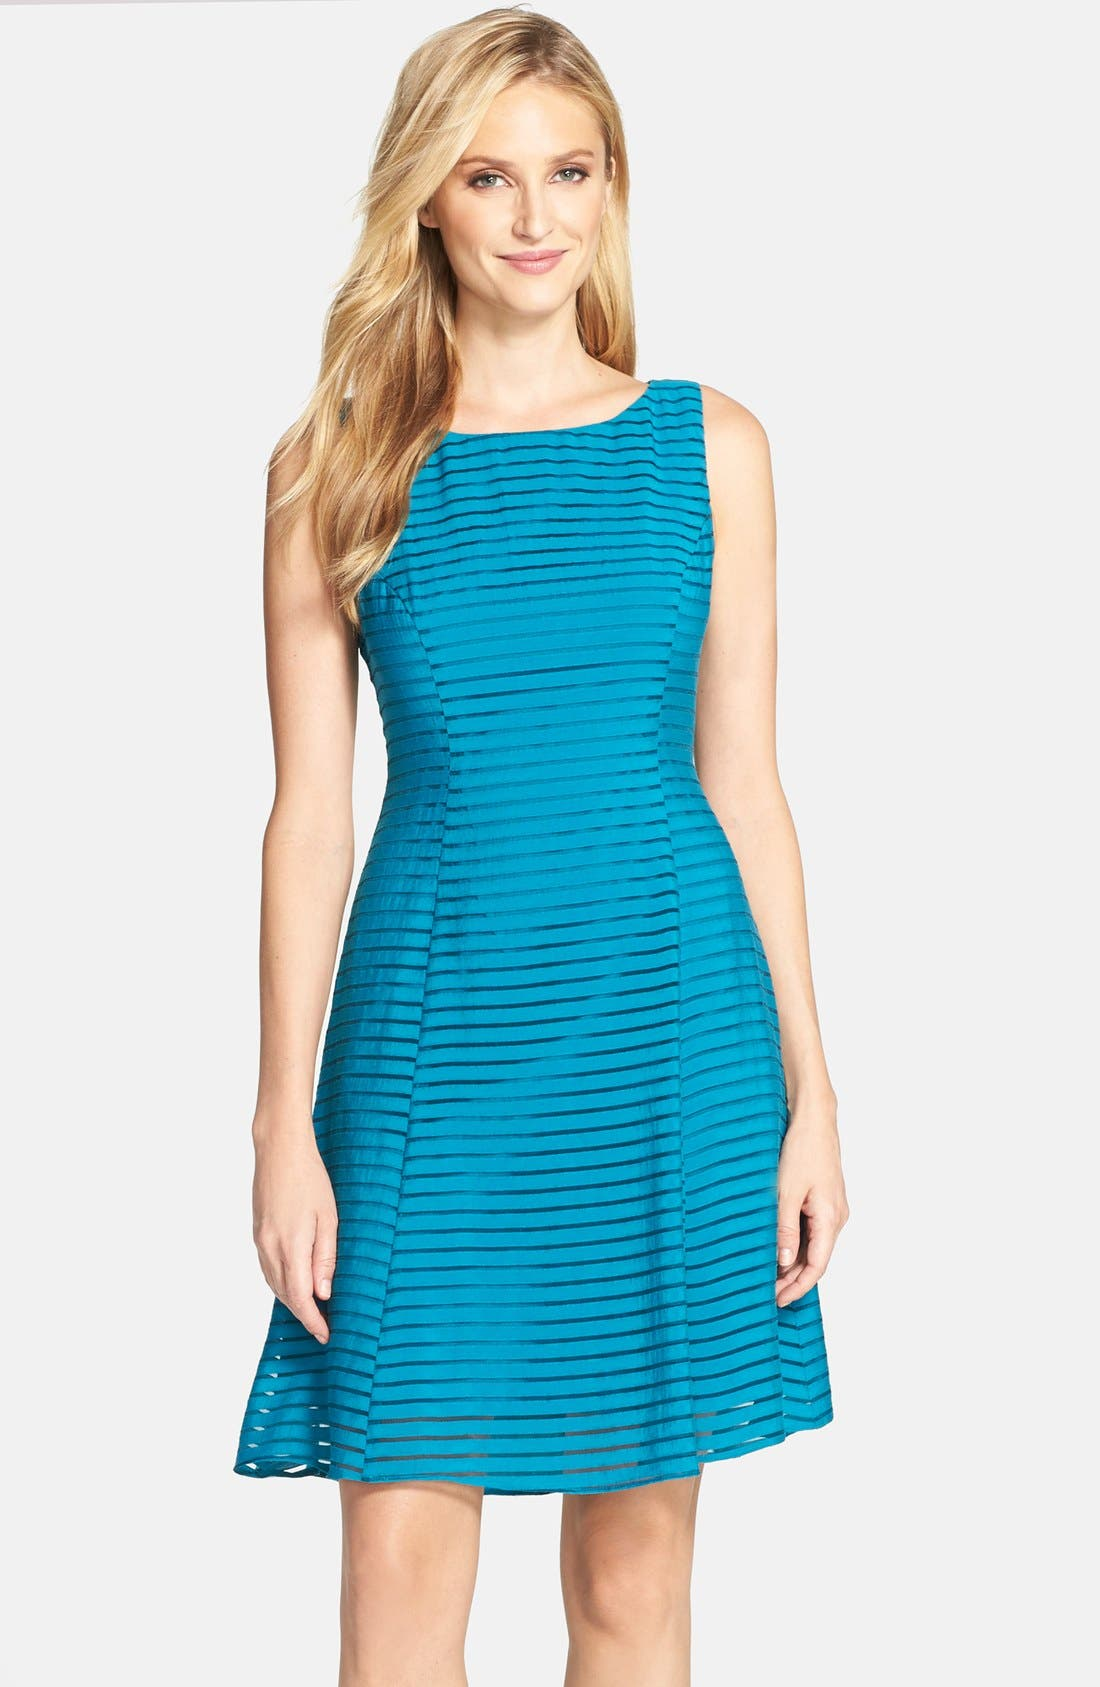 Alternate Image 1 Selected - Adrianna Papell Ribbon Stripe Fit & Flare Dress